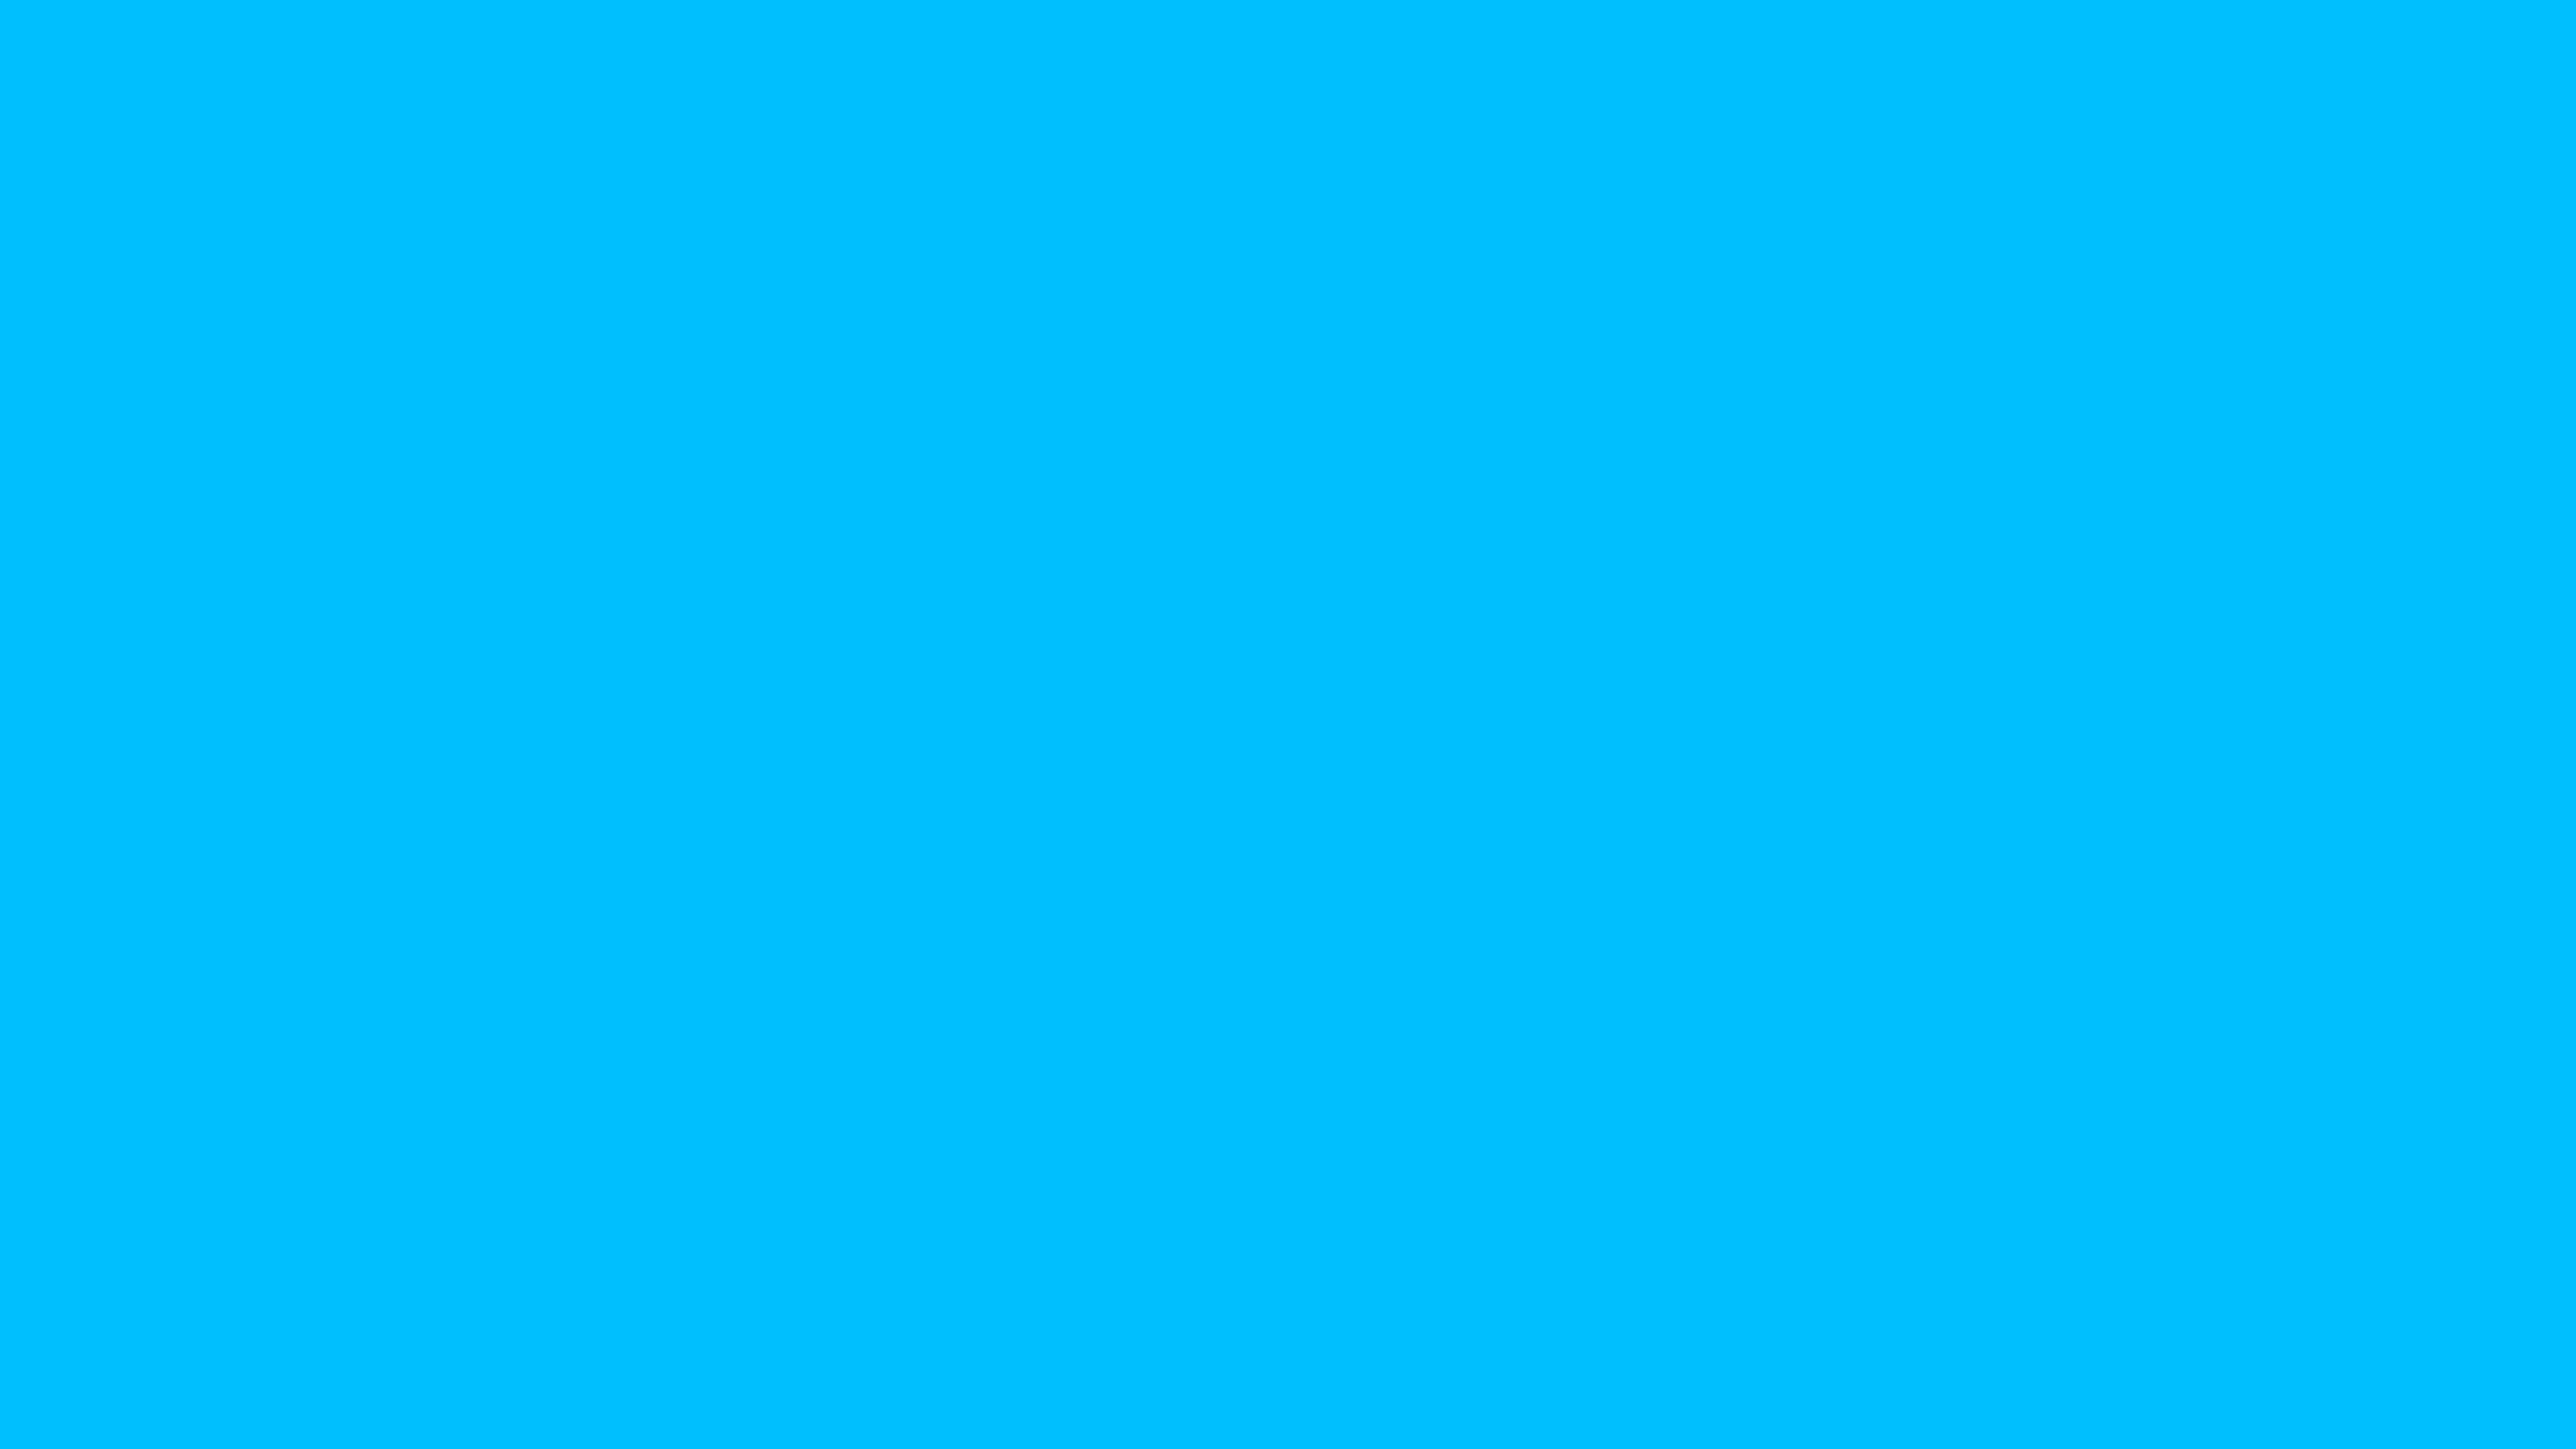 3840x2160 deep sky blue solid color background